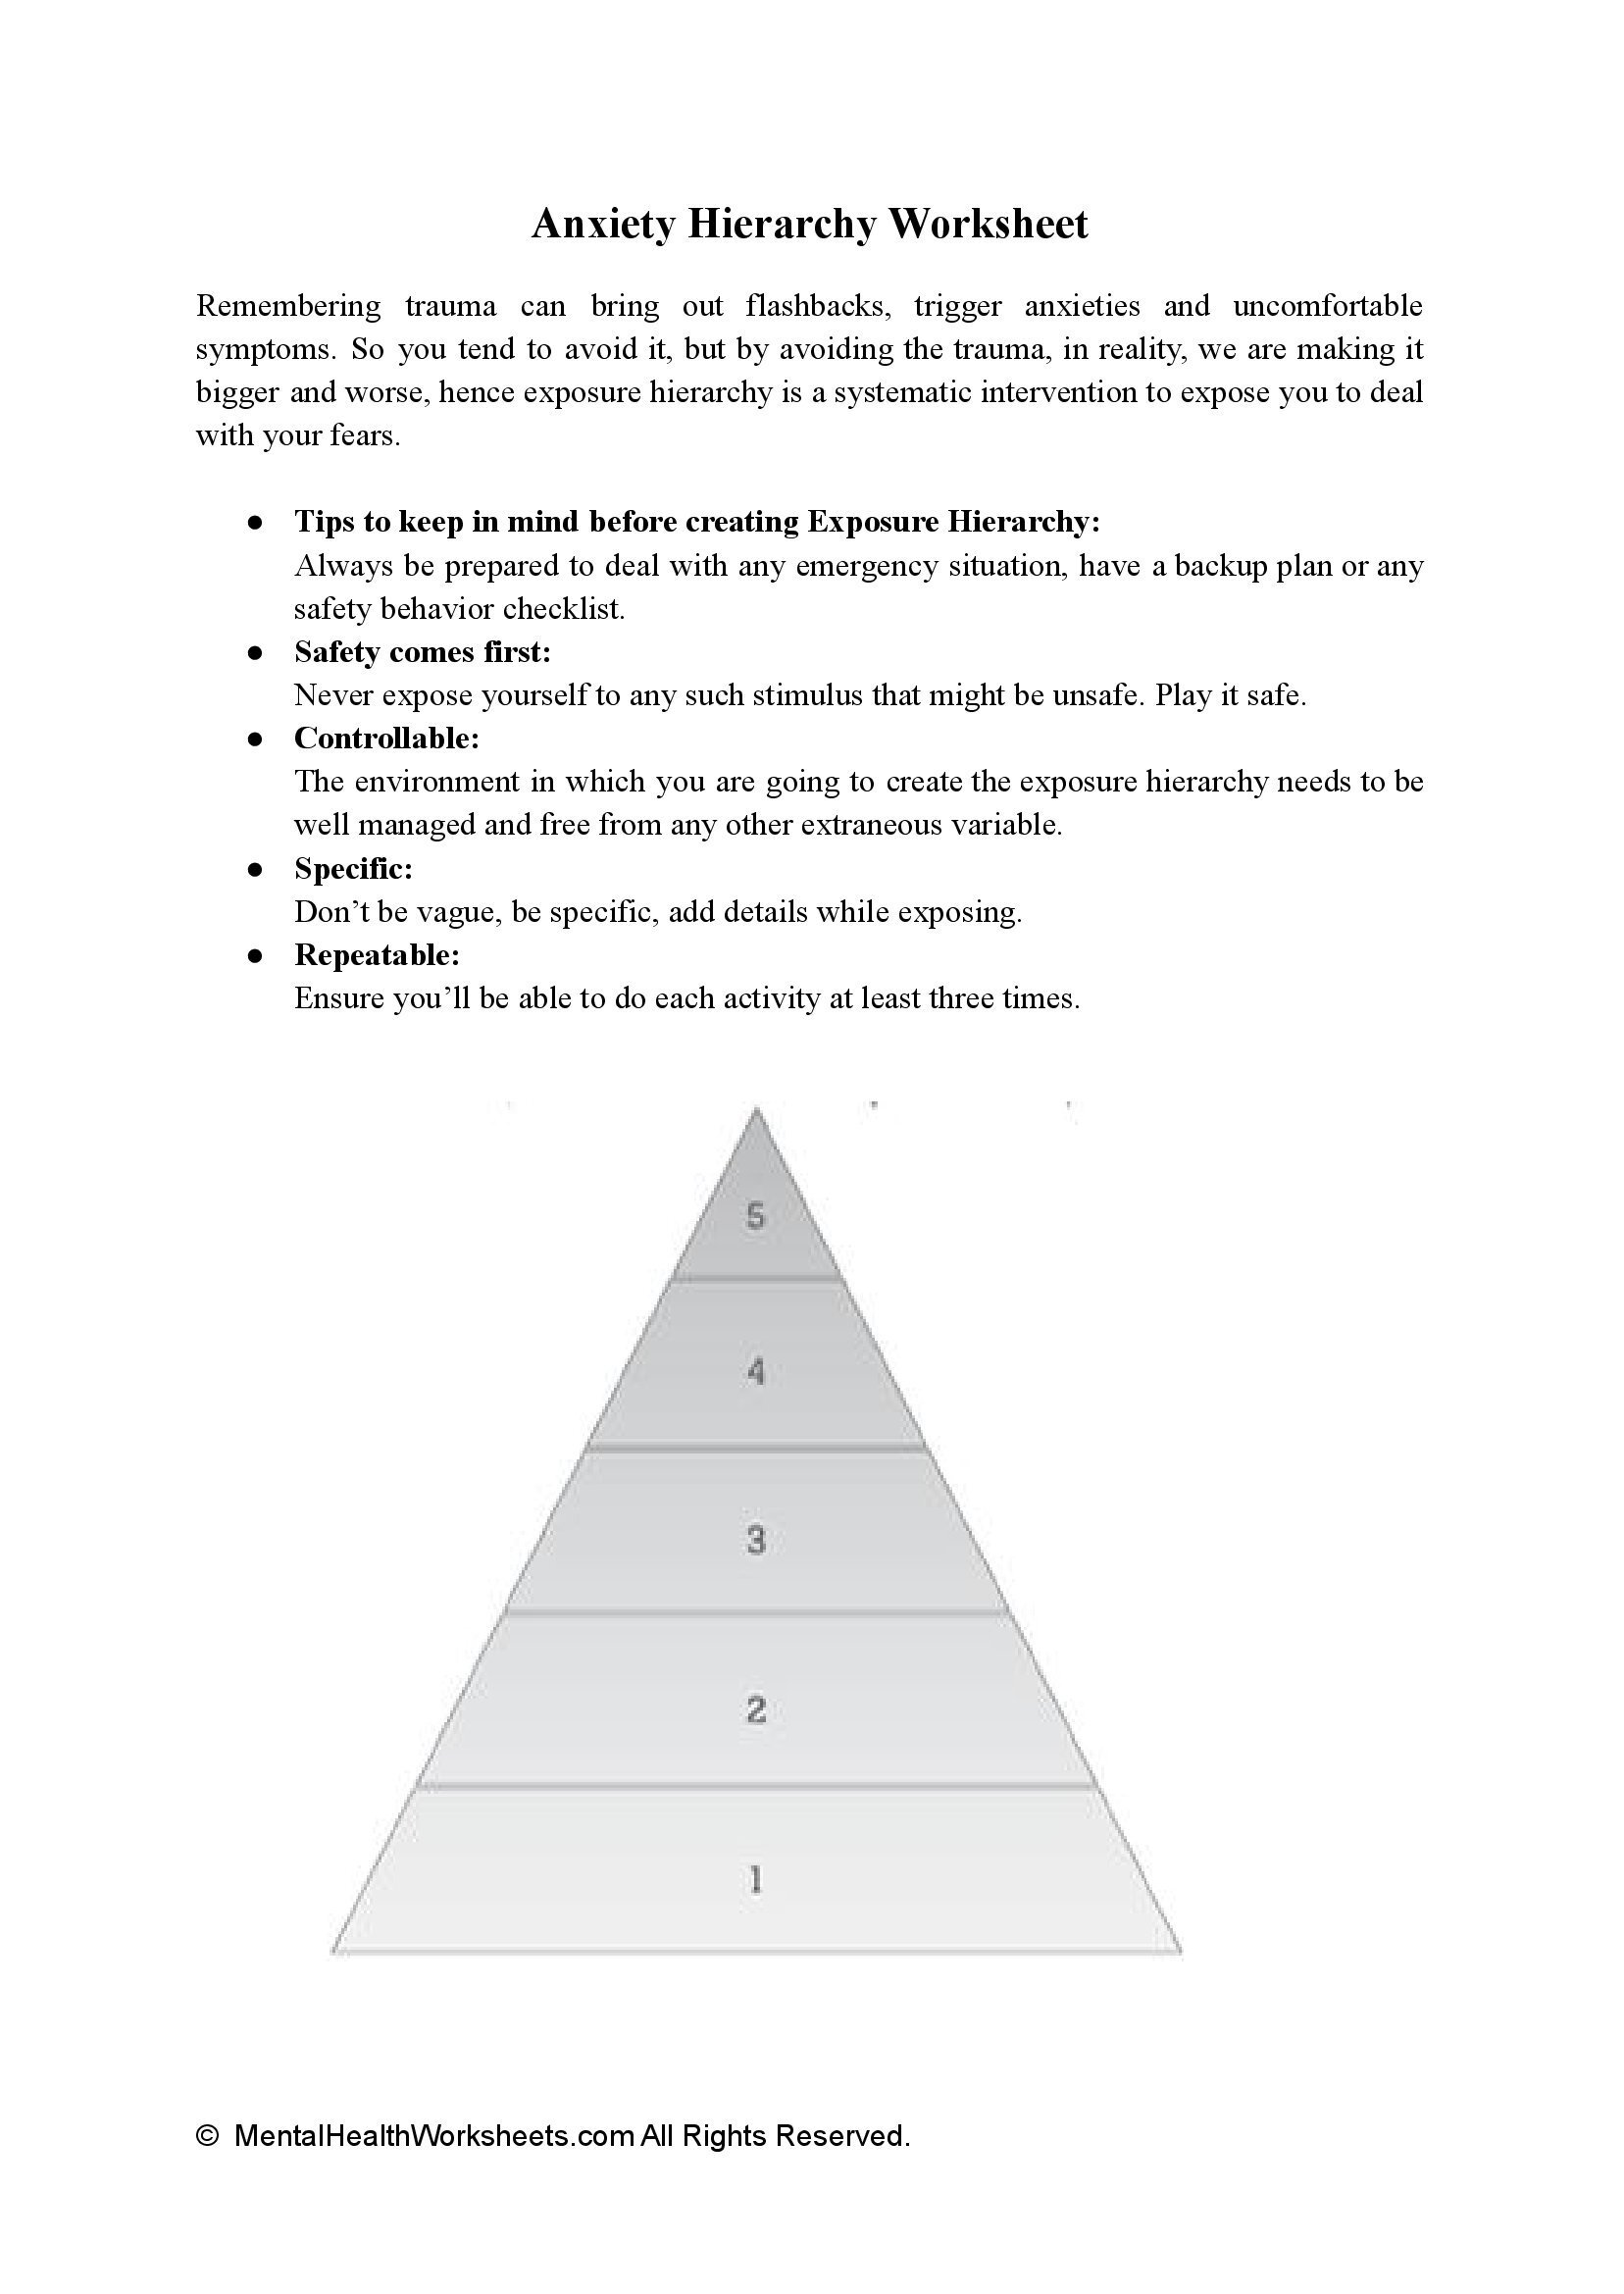 Anxiety Hierarchy Worksheet